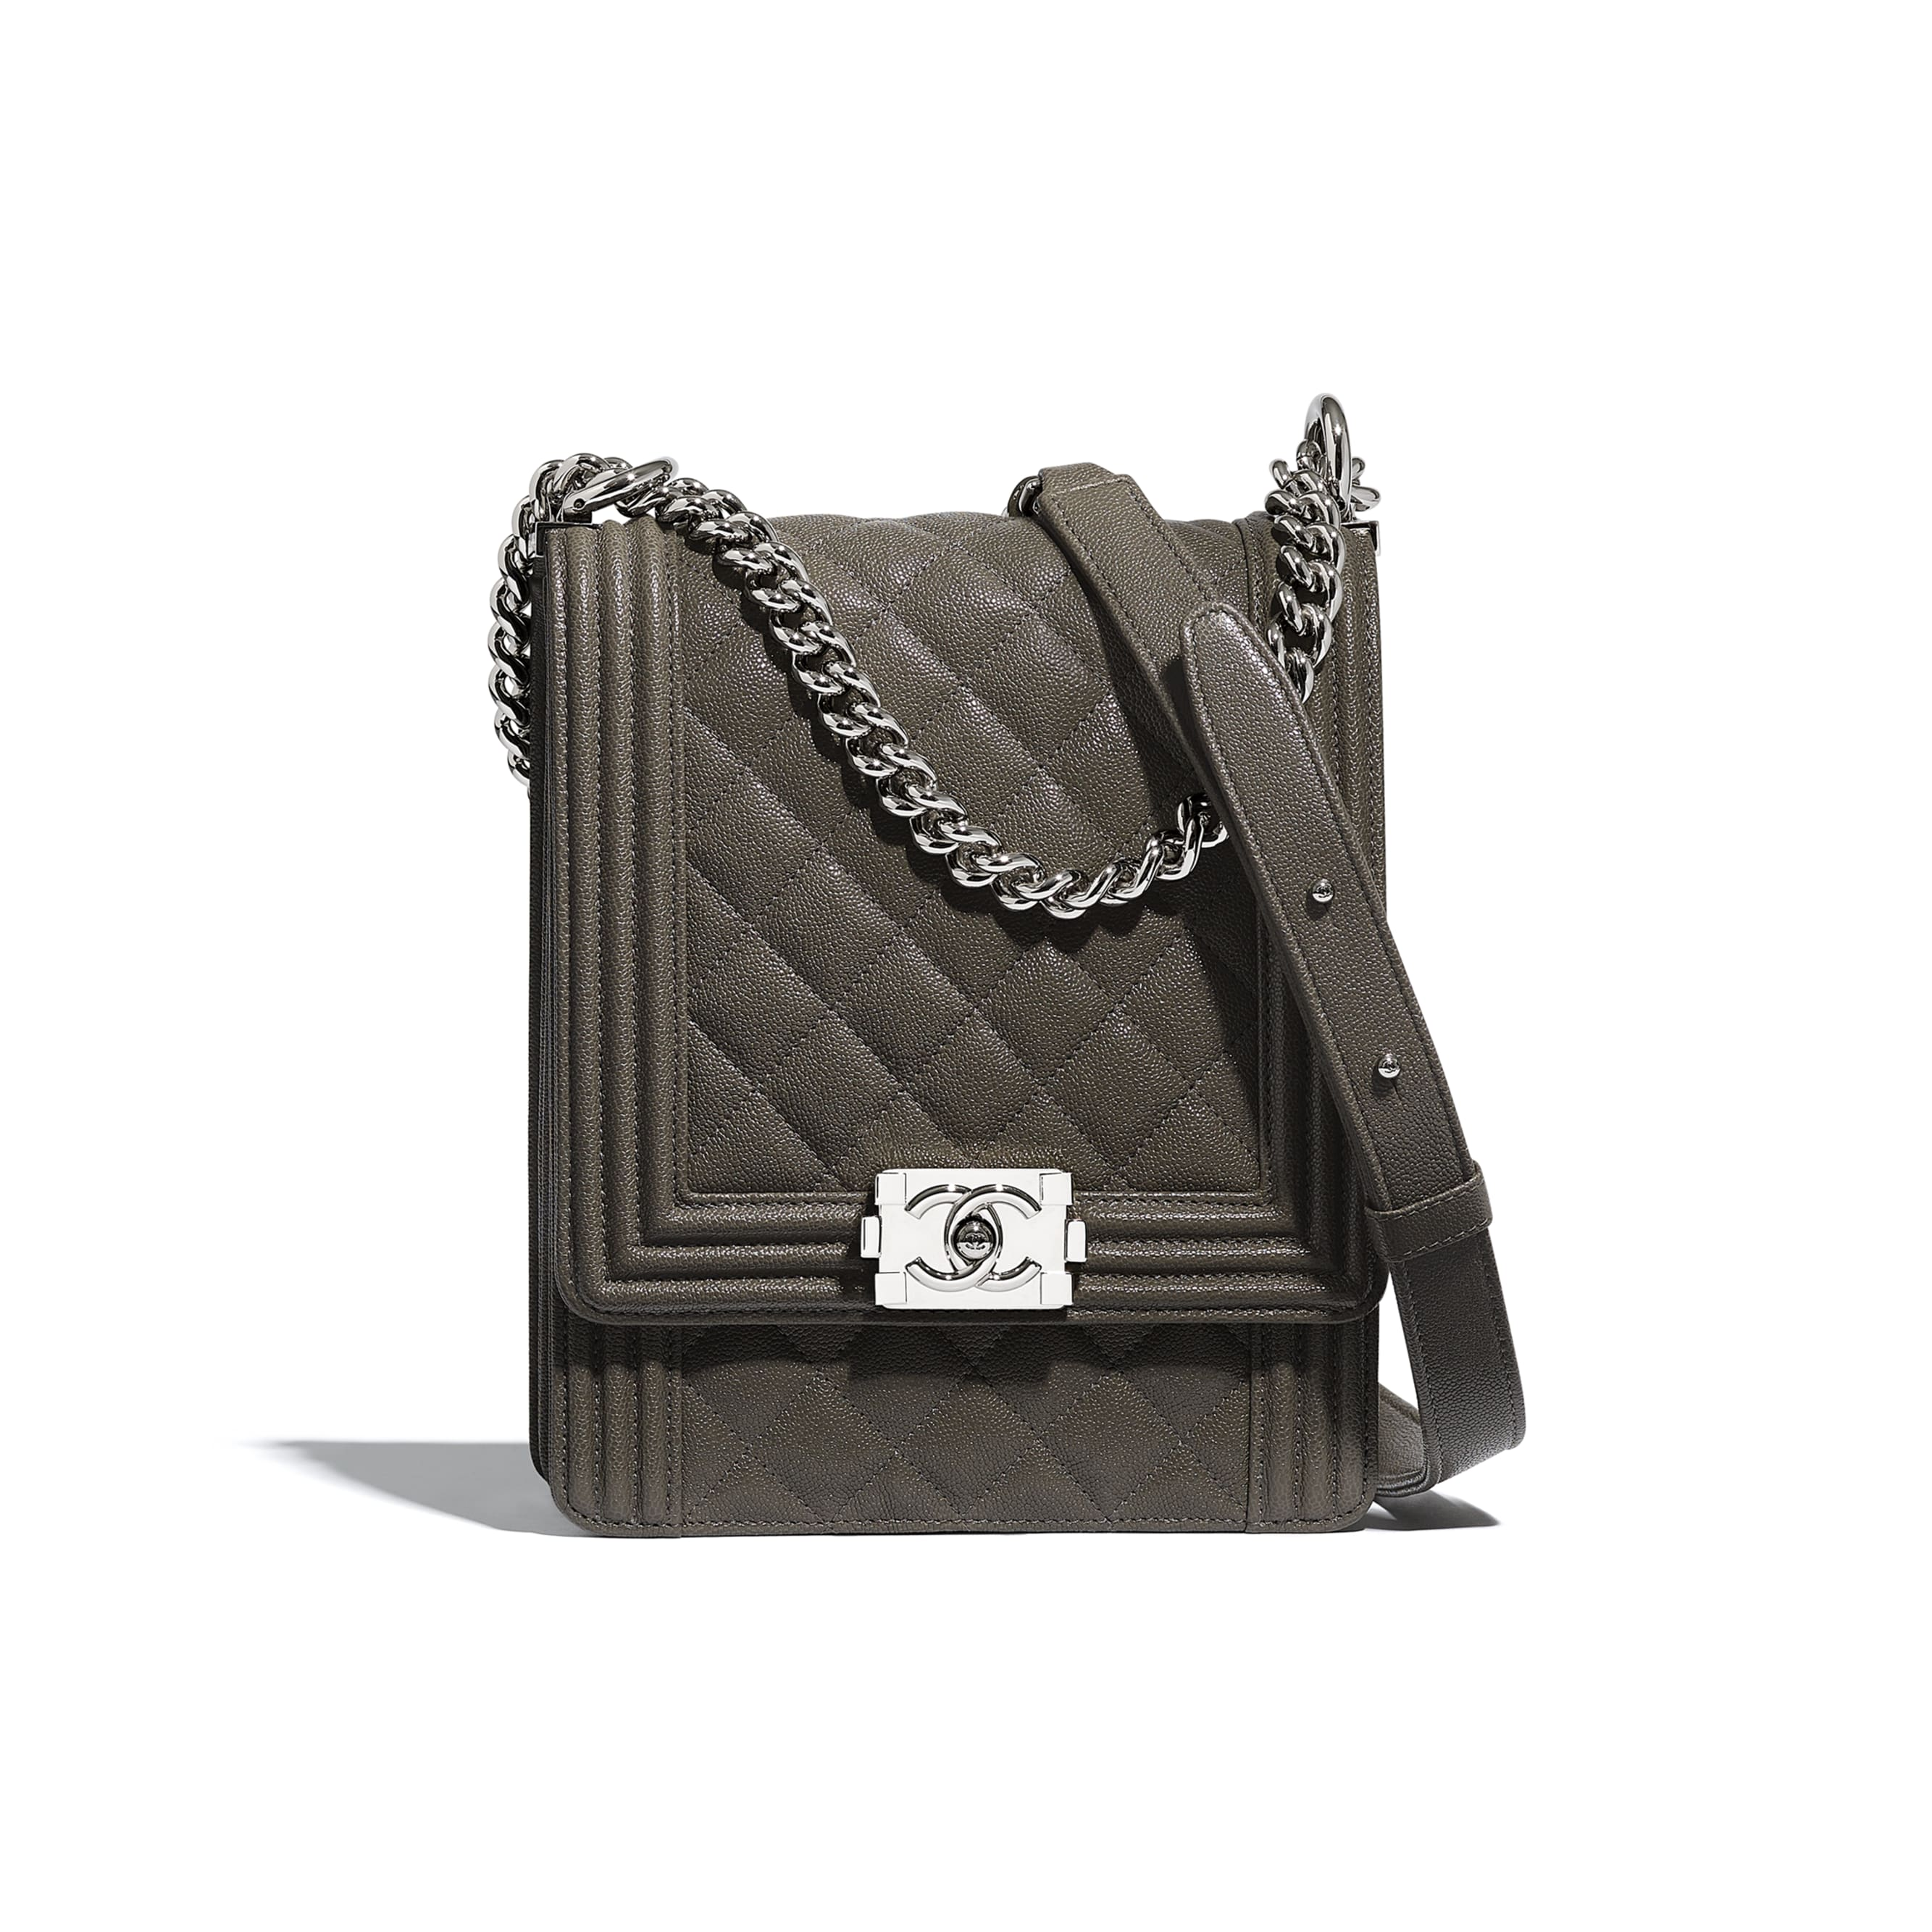 BOY CHANEL Handbag - Grey - Grained Calfskin & Silver Metal - Default view - see standard sized version